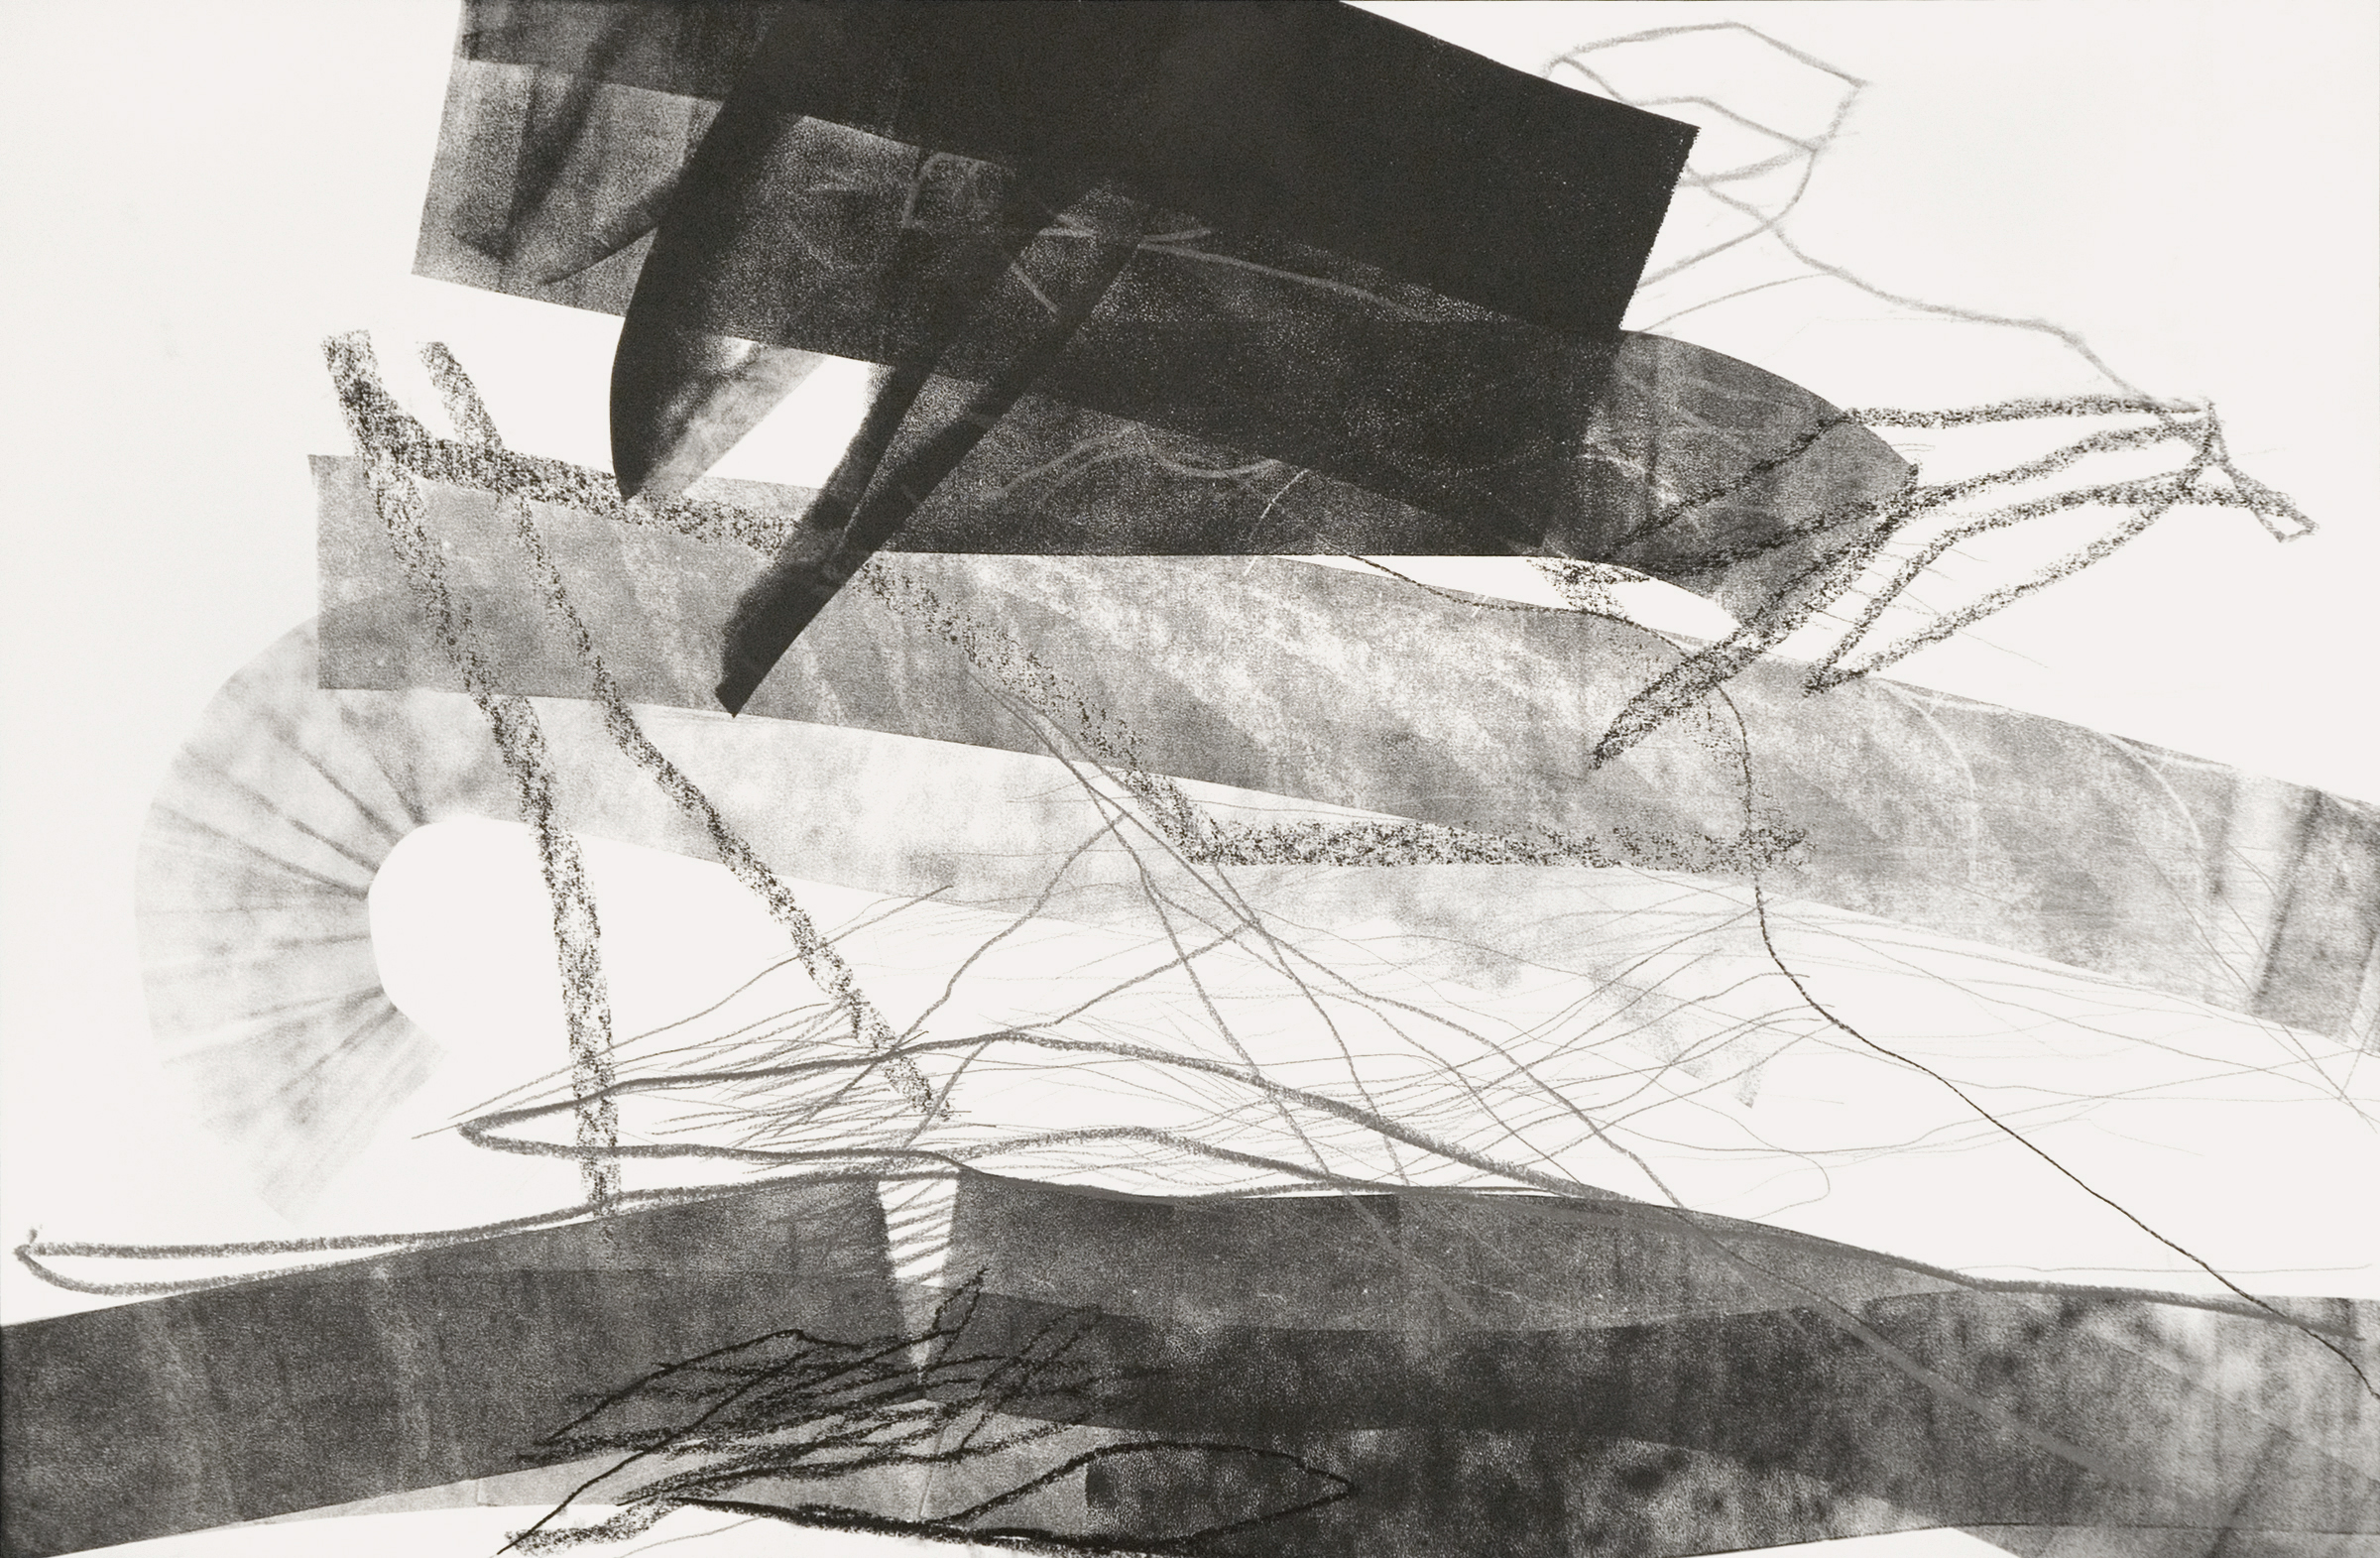 Untitled (rd.08.60), 2008 ink, charcoal, graphite on paper 26 x 40 inches